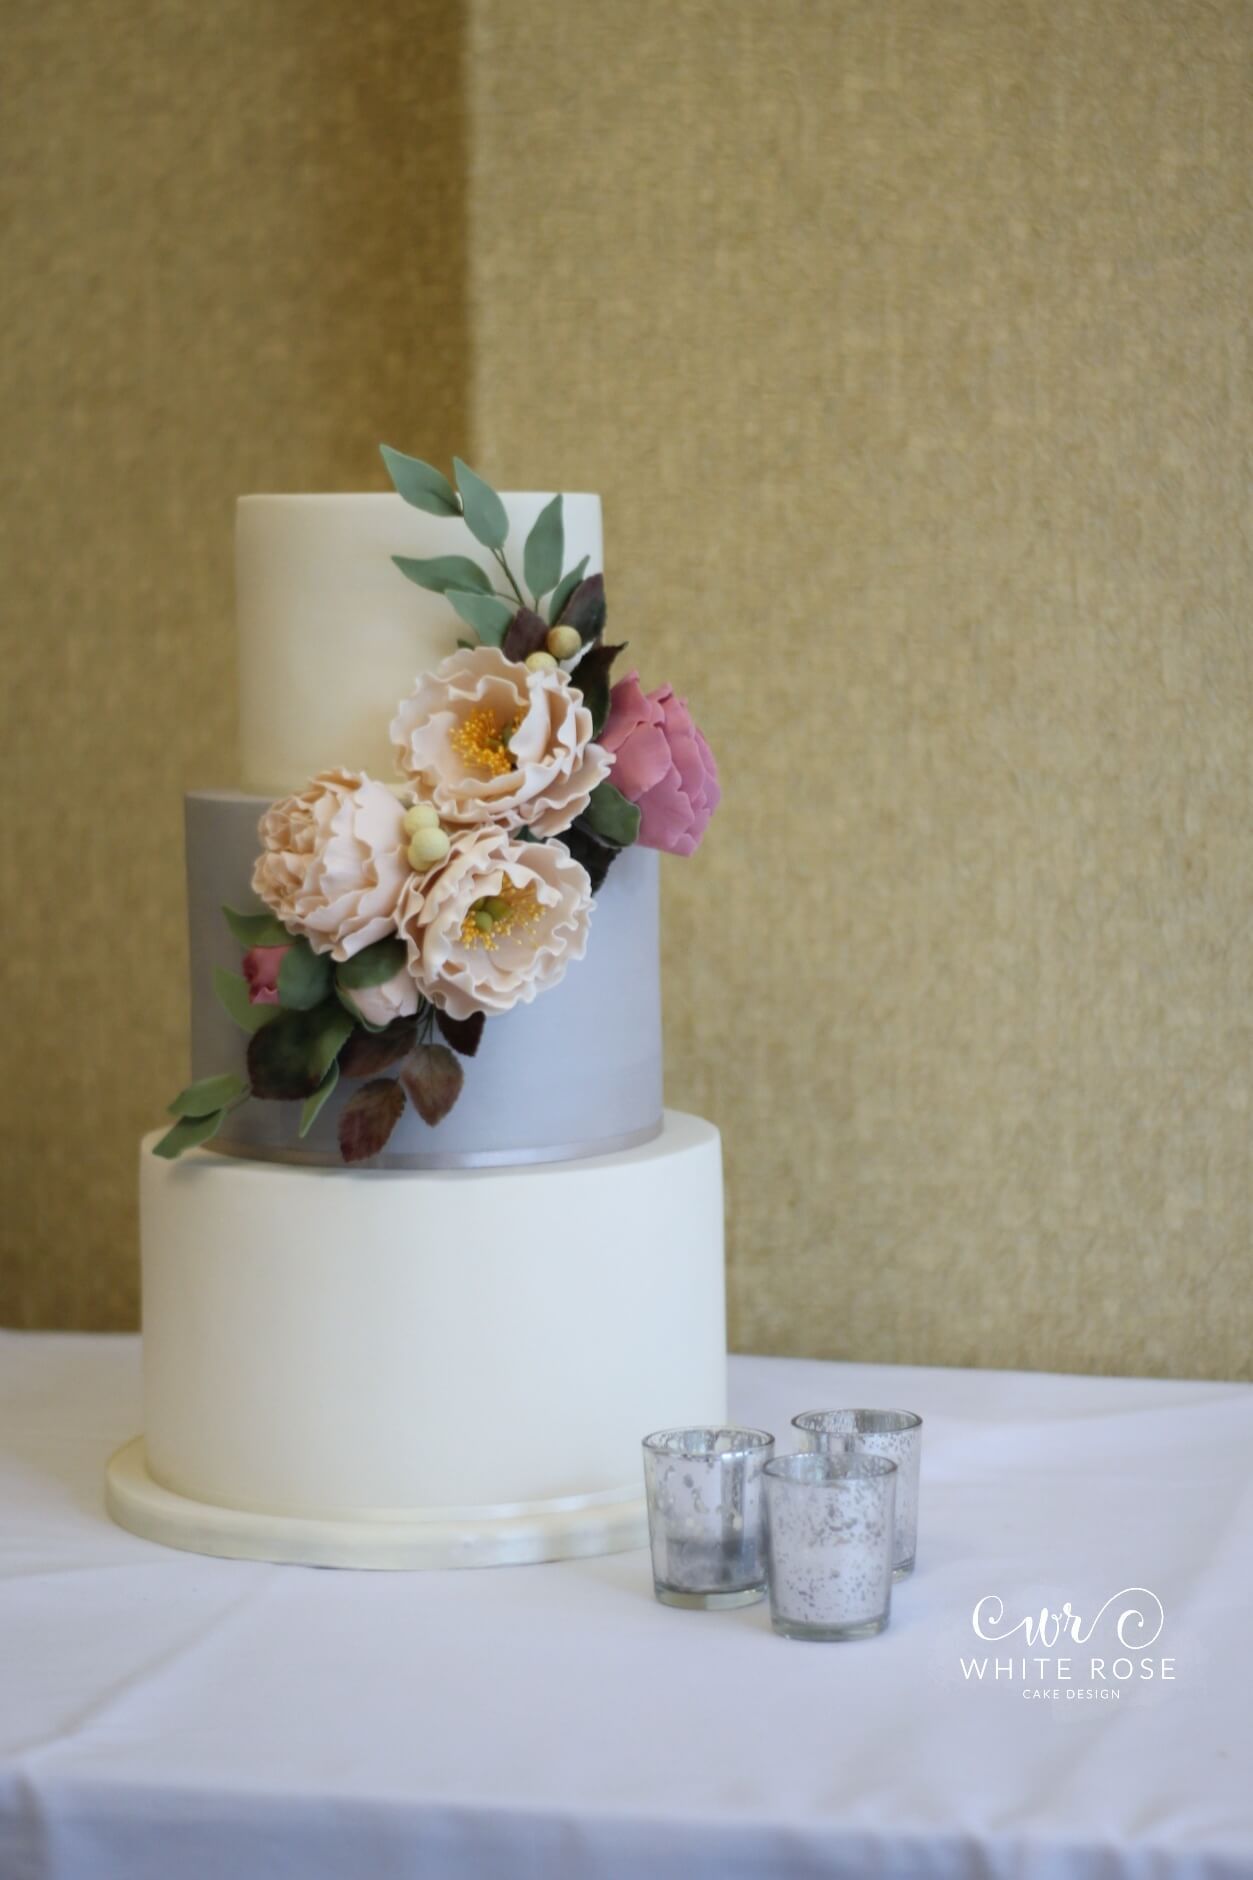 Peach Peonies Wedding Cake at Aldwark Manor by White Rose Cake Design Bespoke Cake Makers in West Yorkshire